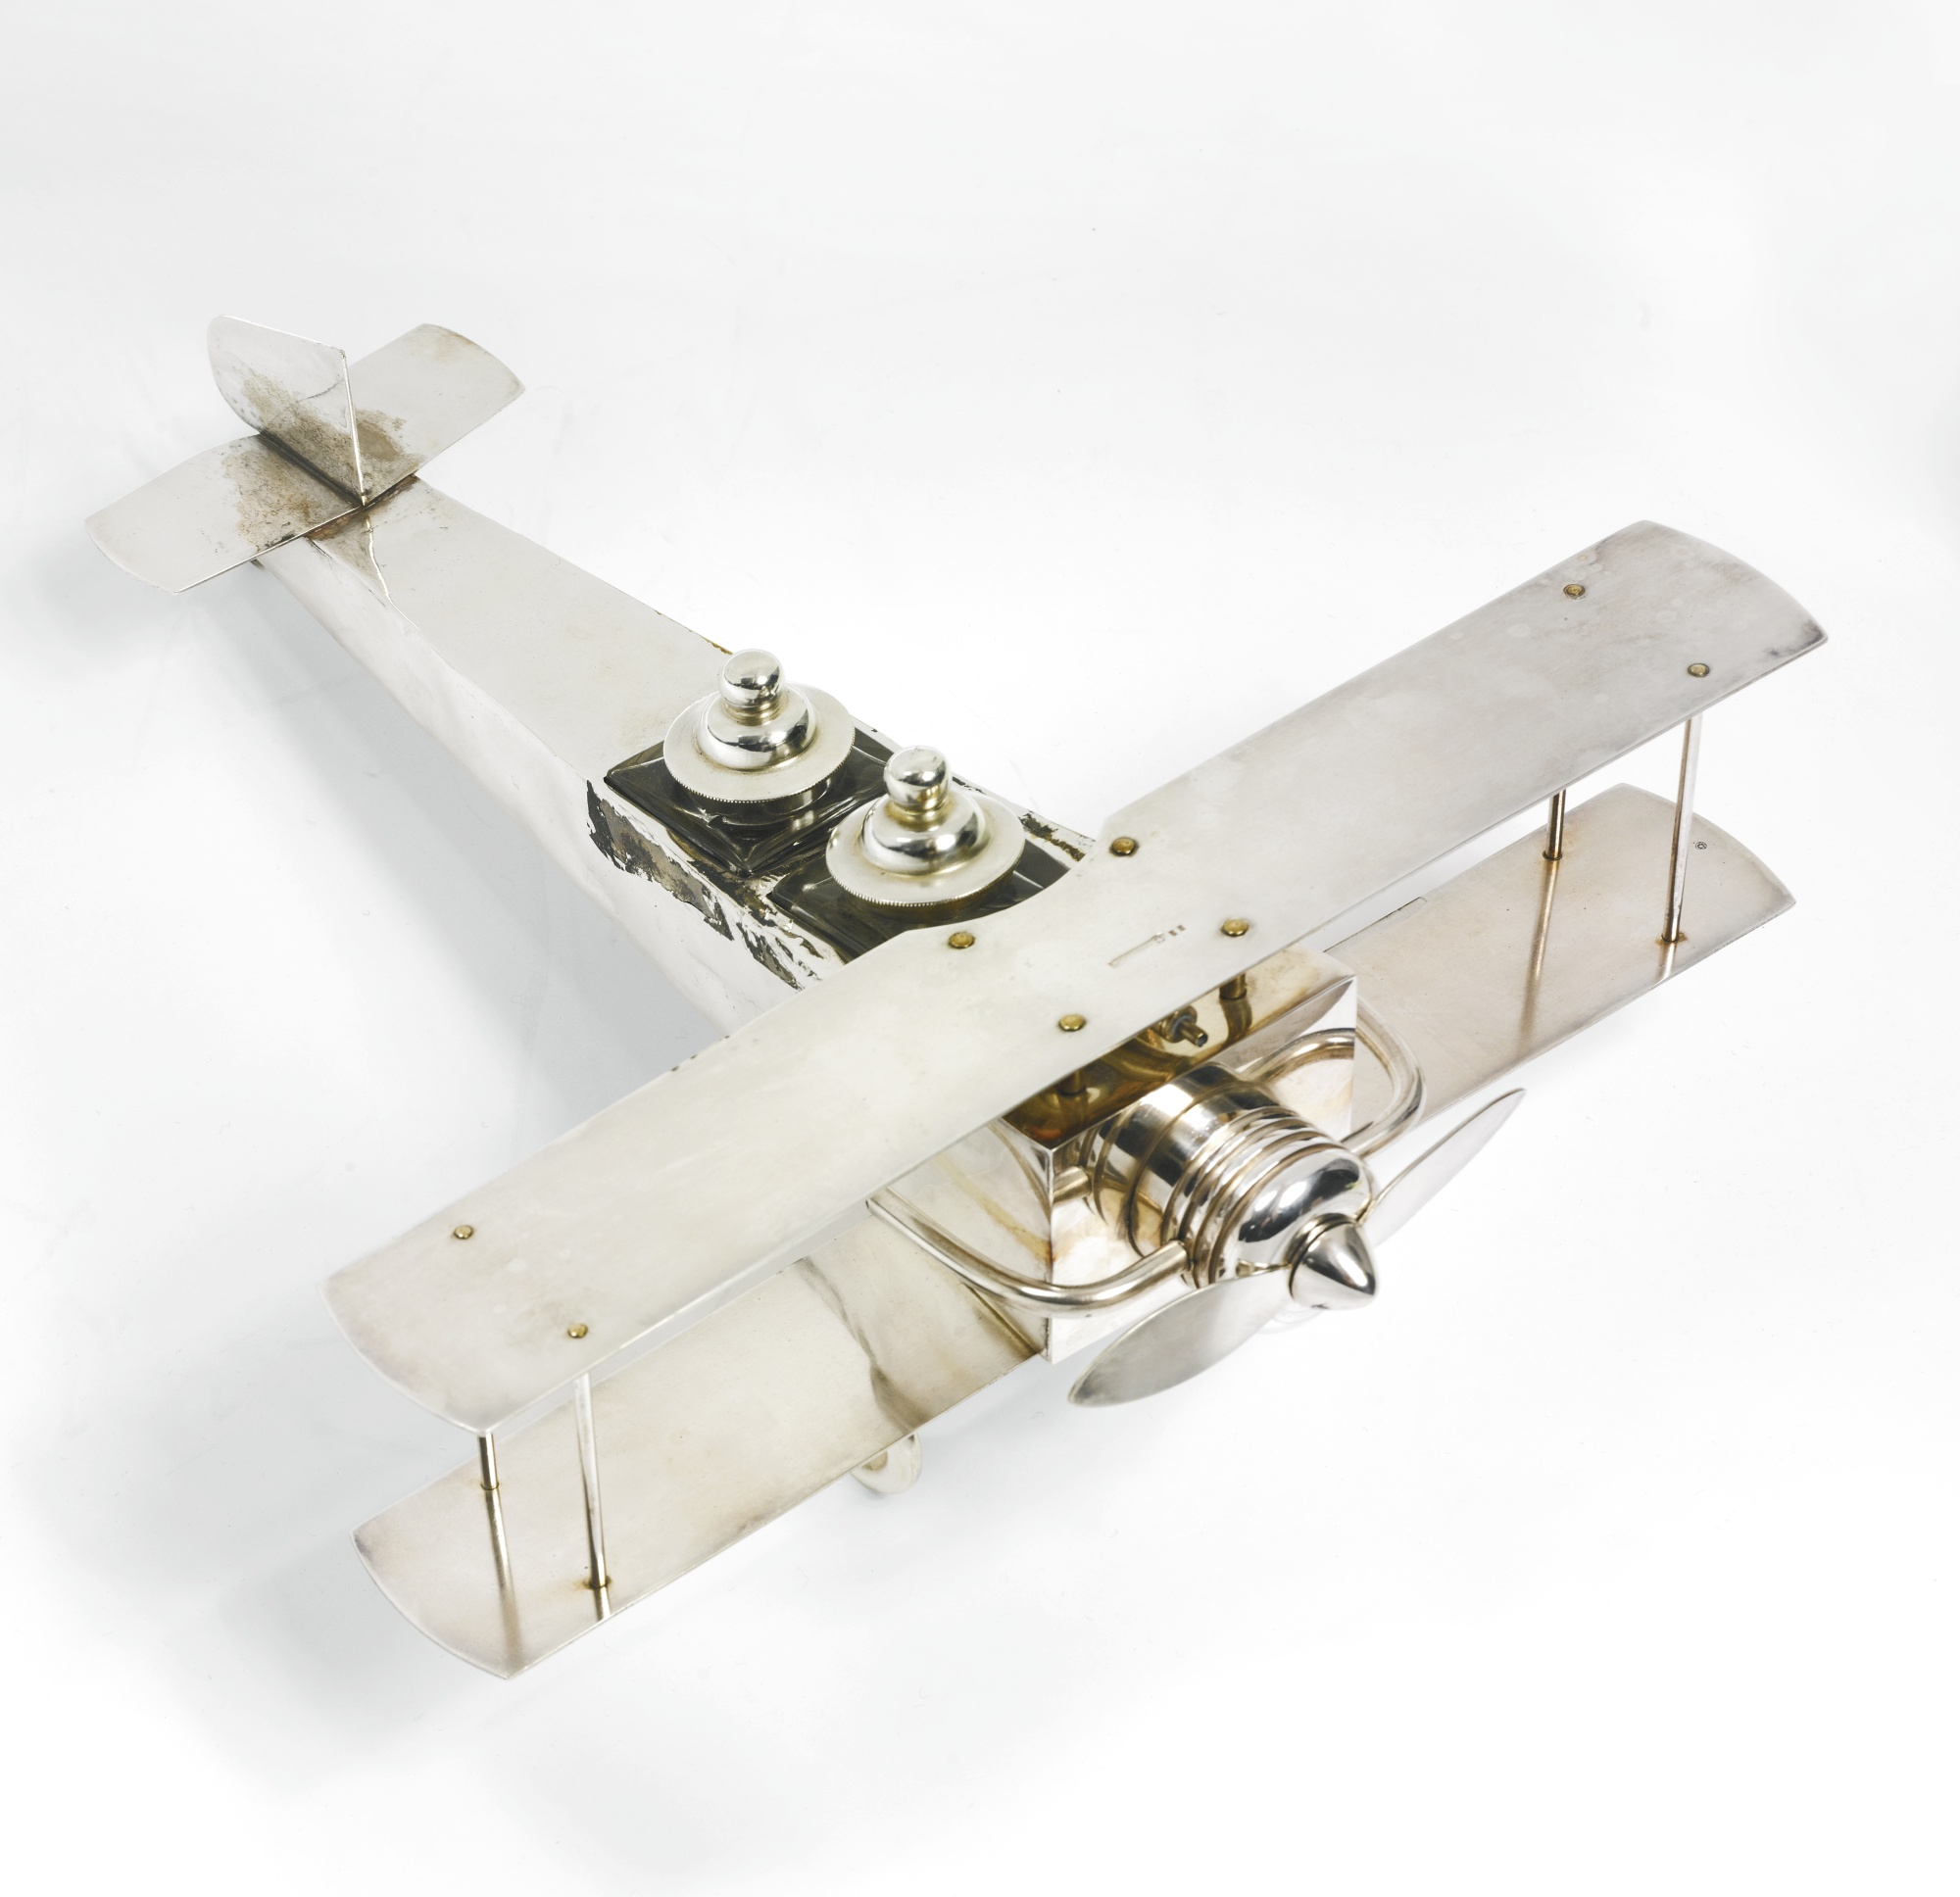 Belgian Art Deco Airplane Inkstand-1930